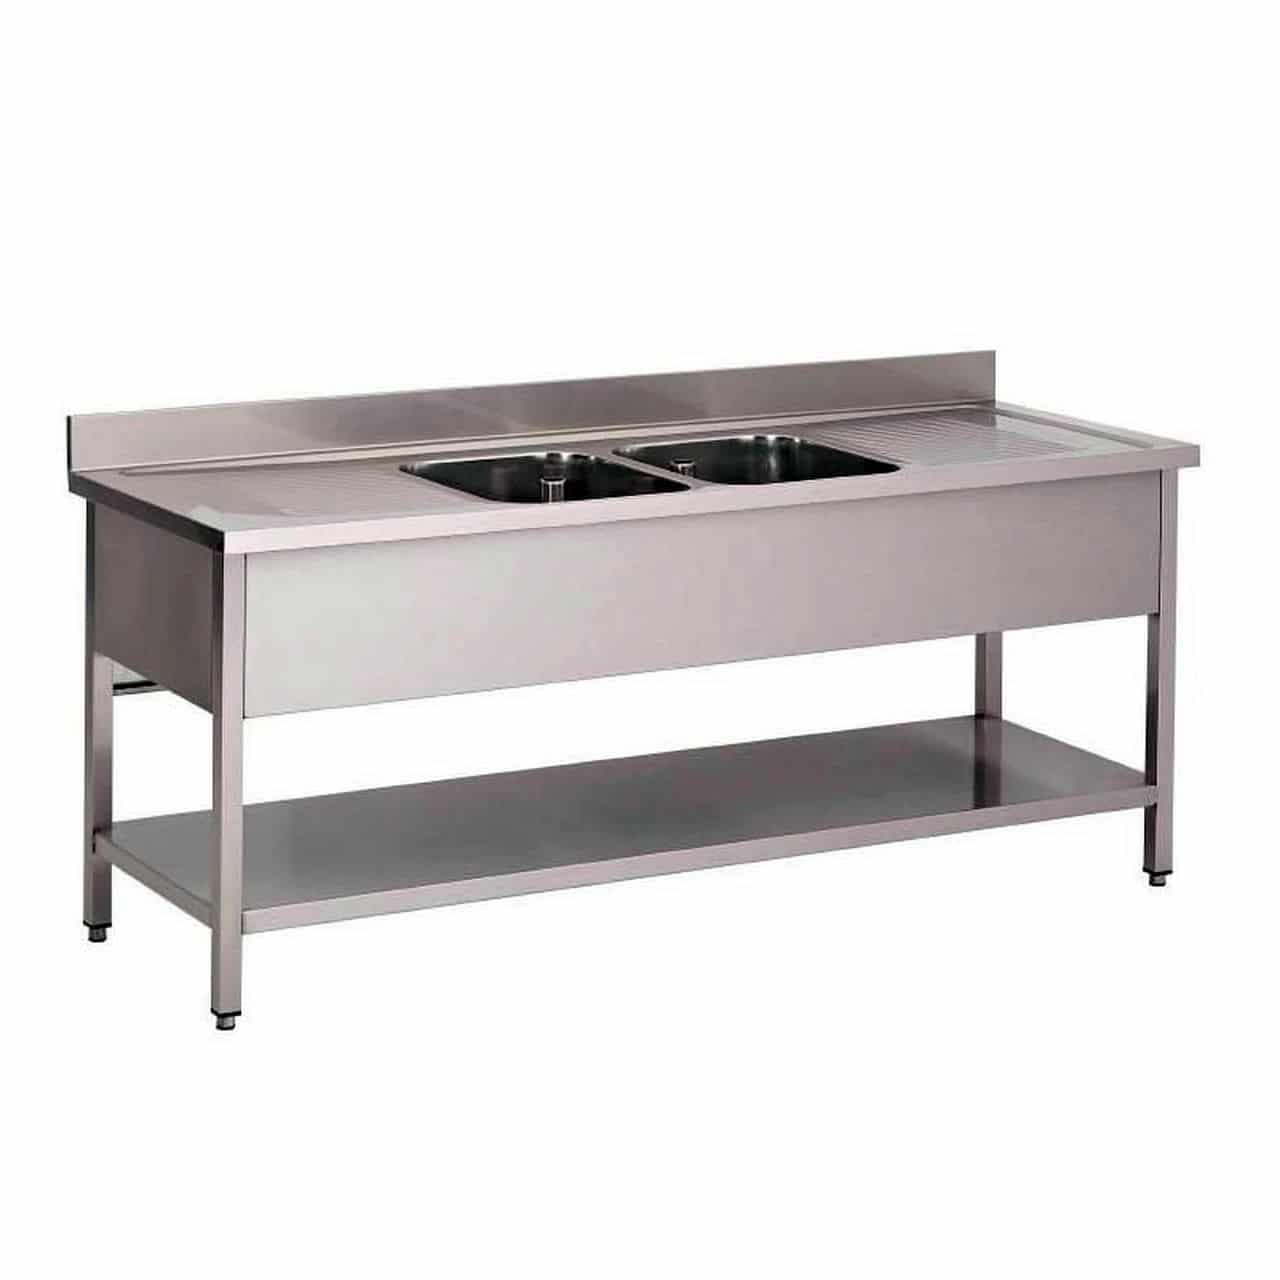 Etagere Grille Inox Etagere Grille Inox